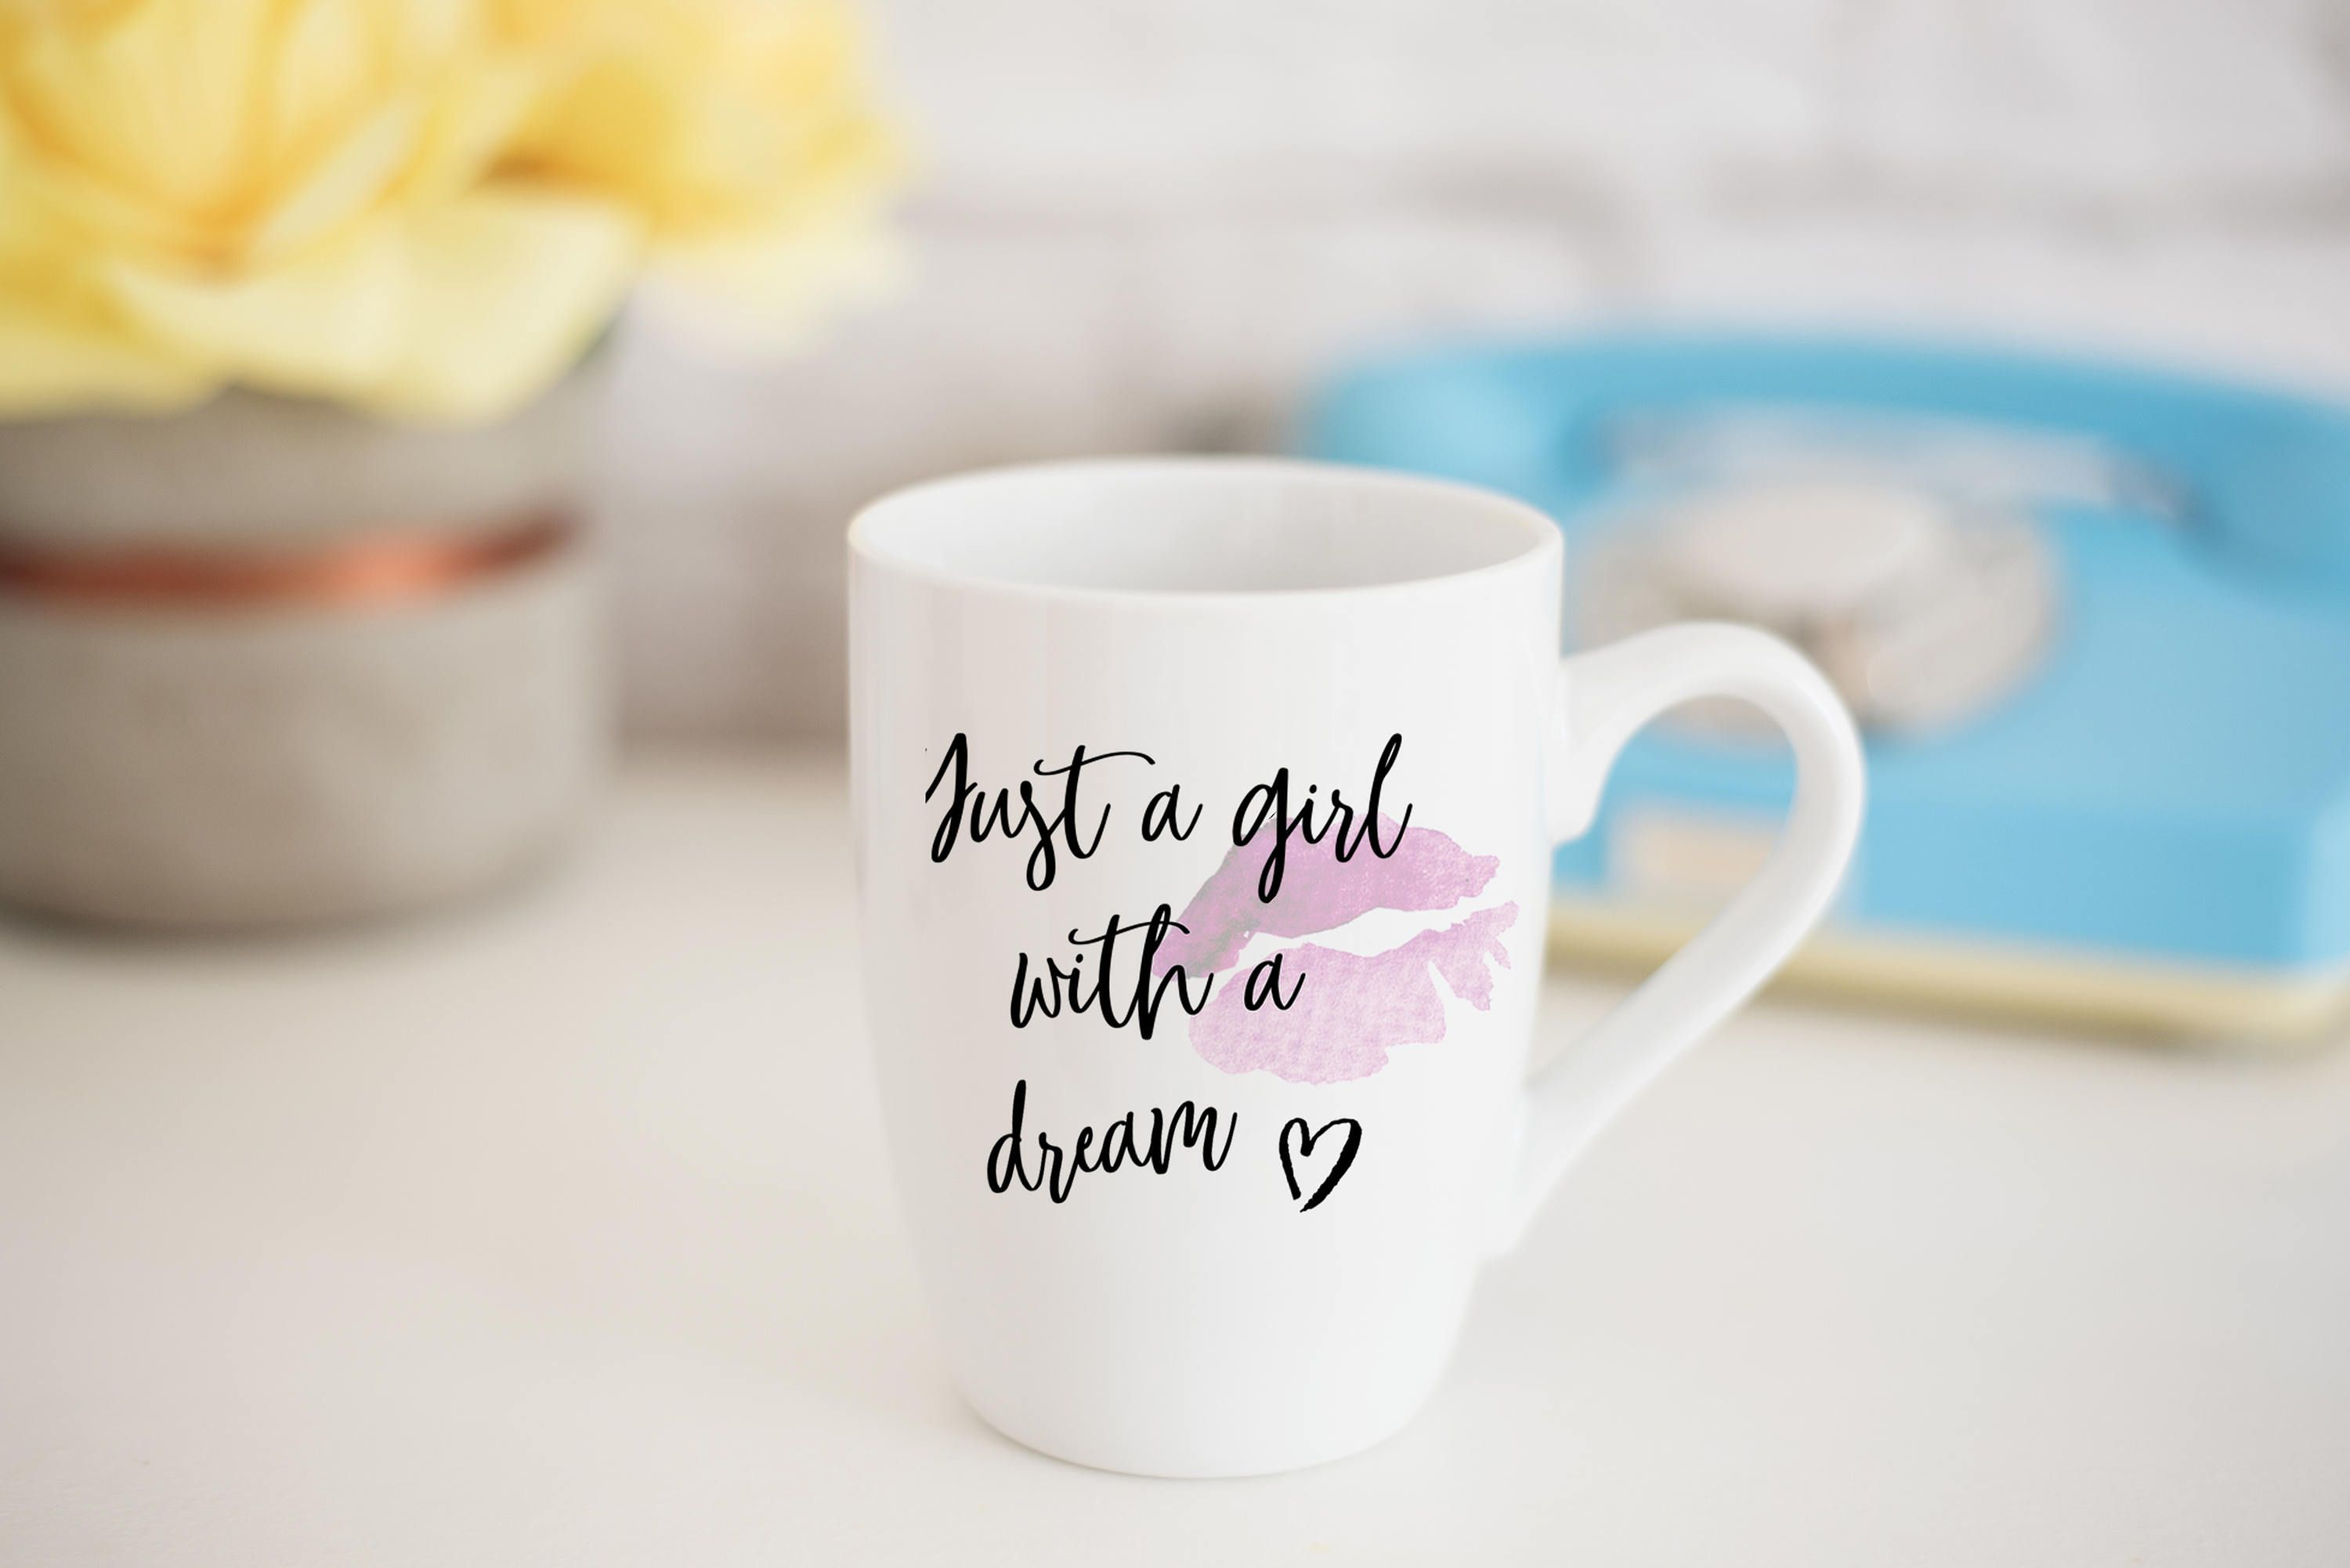 Just A Girl With A Dream Quote Coffee Mug Cute Typography Gift Mug Typography Mug Funny Gag Gift Mug Gif Coffee Quotes Gifts In A Mug Gag Gifts Funny